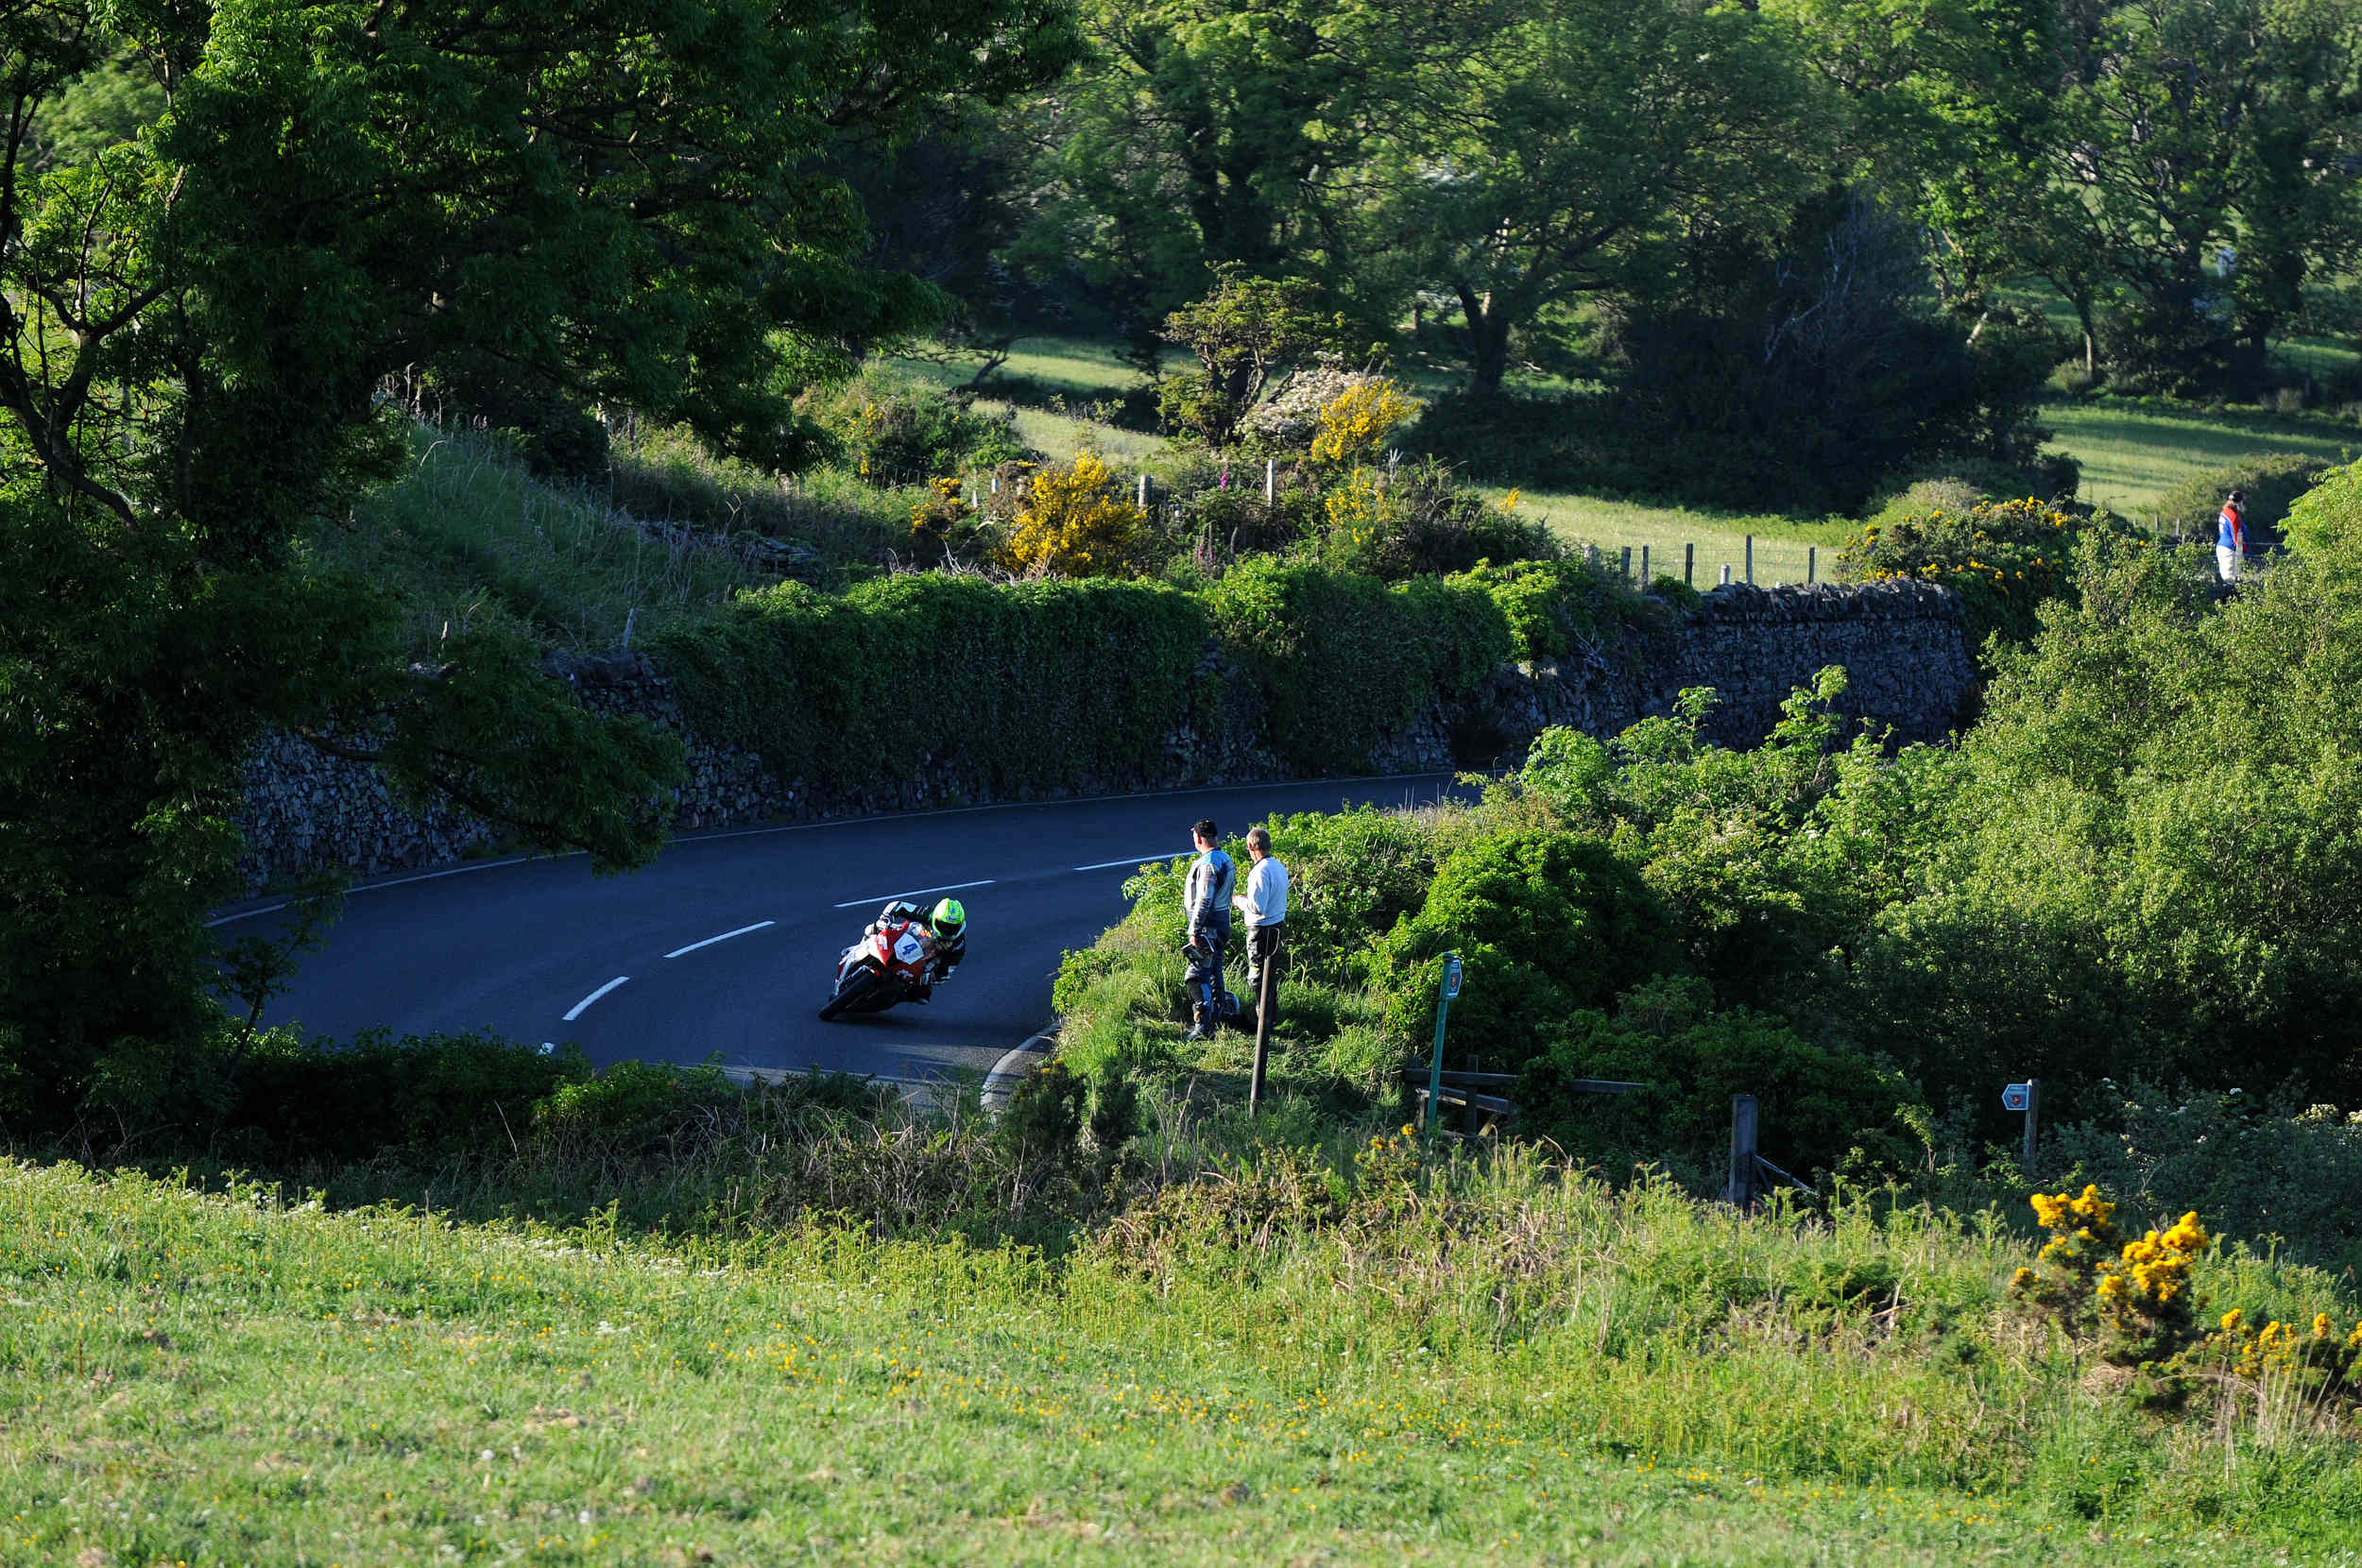 Cameron Donald at Tower Bends, TT qualifying 2012